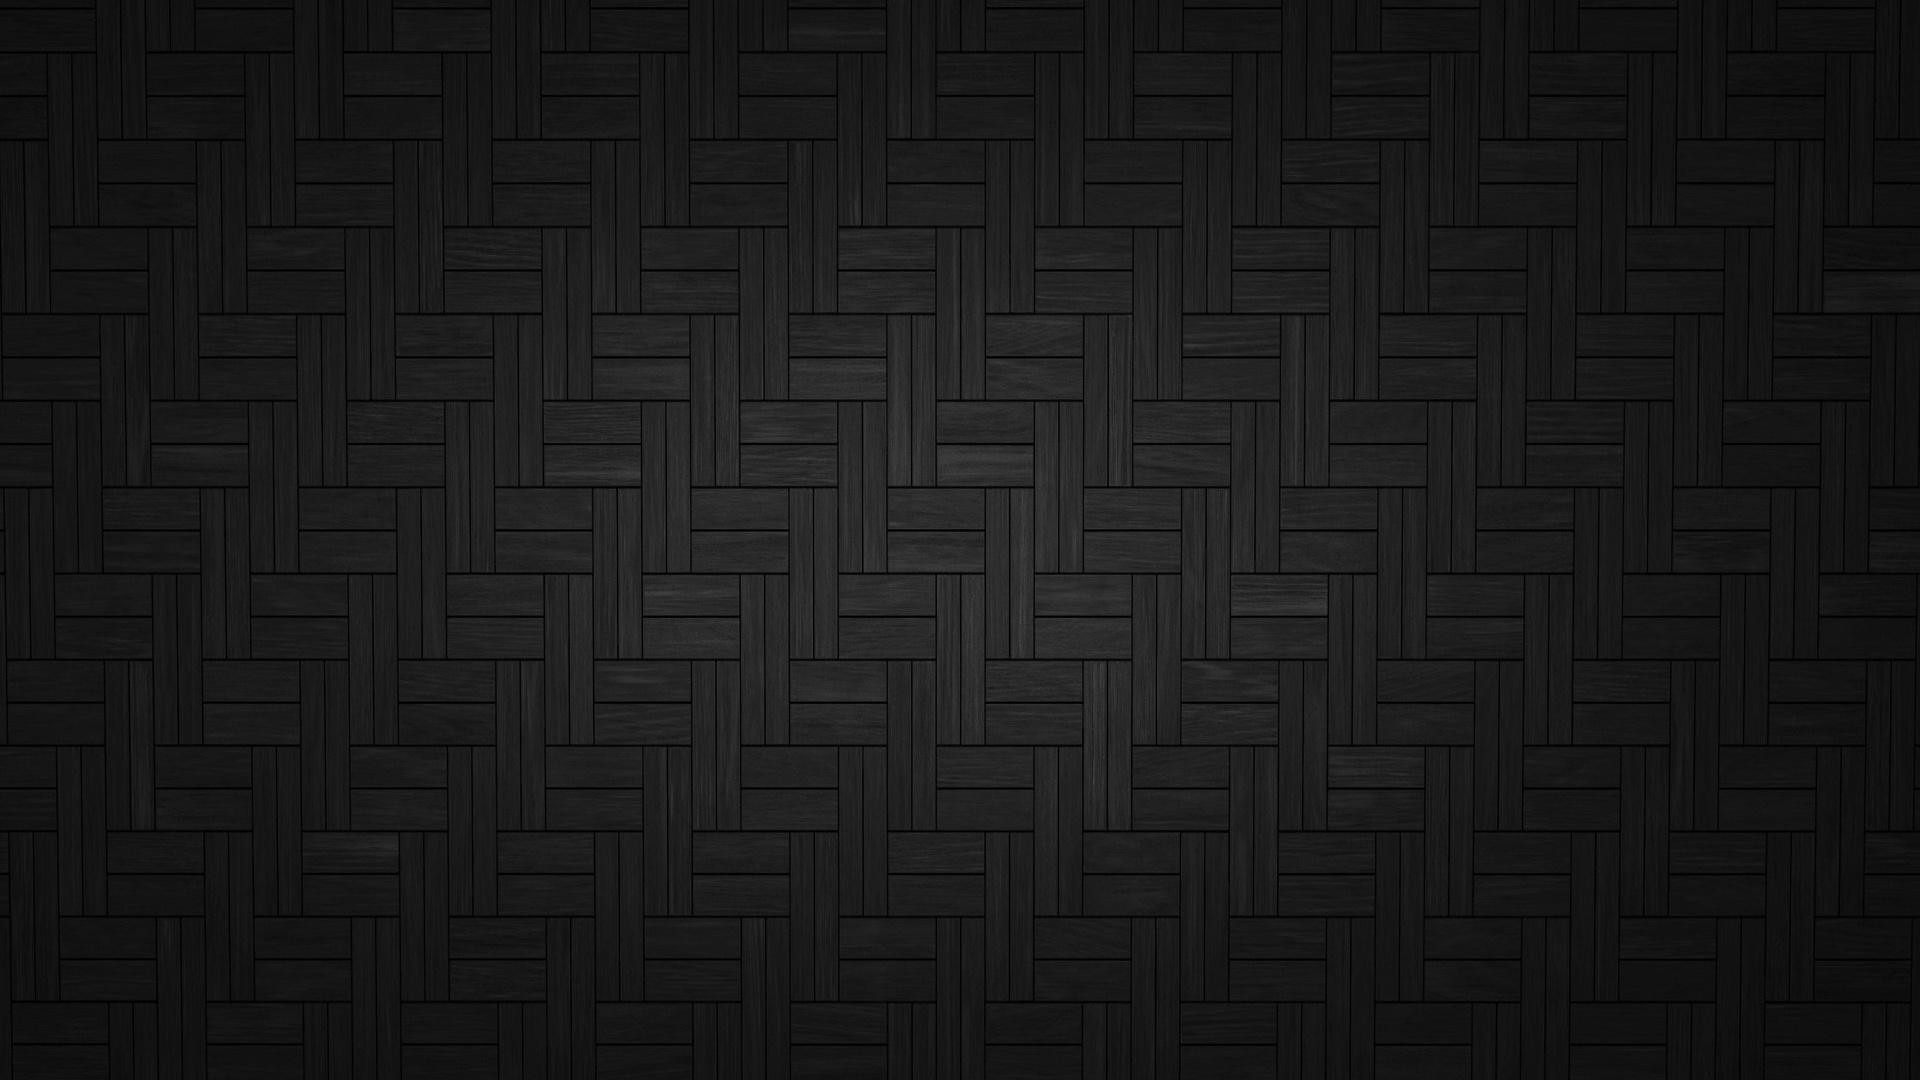 Black tile wallpaper 41 images for Black 3d tiles wallpaper